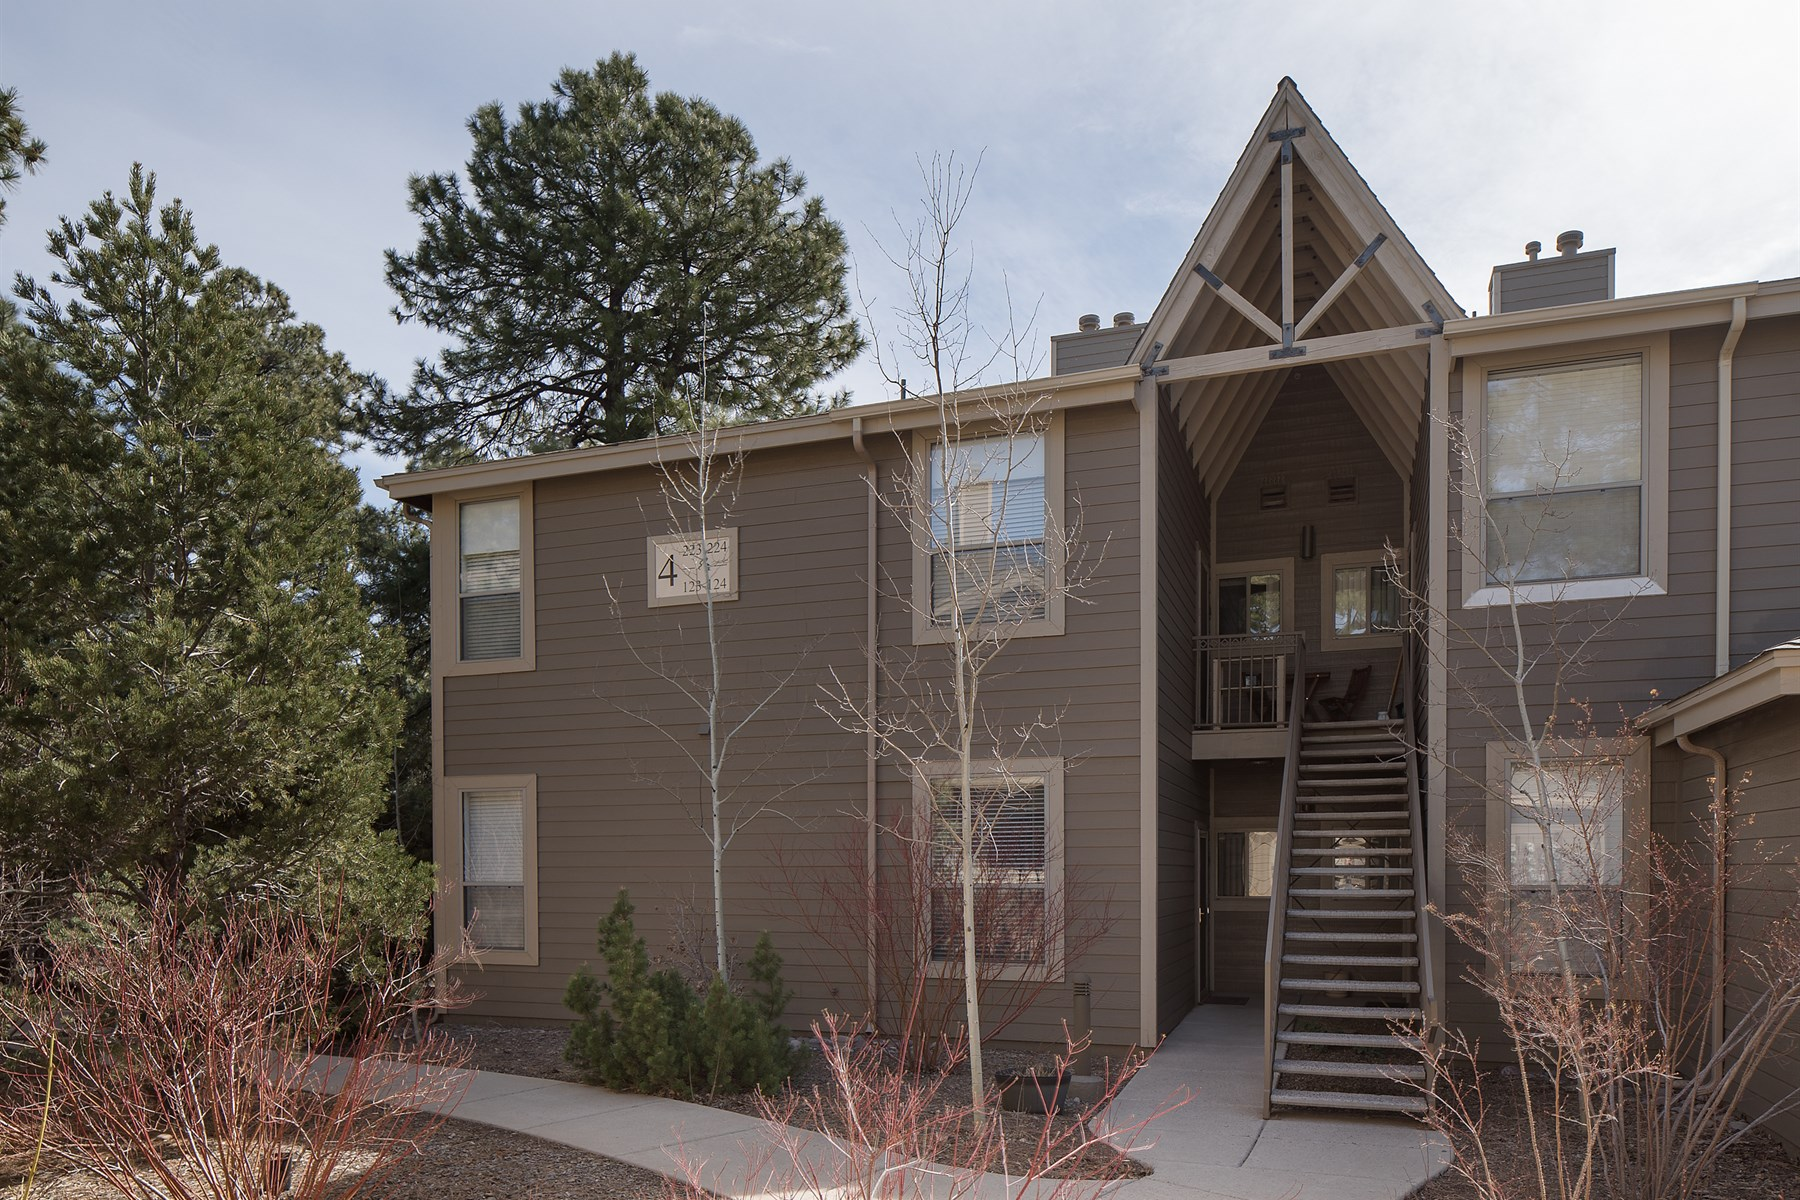 Single Family Home for Sale at Summit park condo 1401 N Fourth St #223 Flagstaff, Arizona, 86004 United States